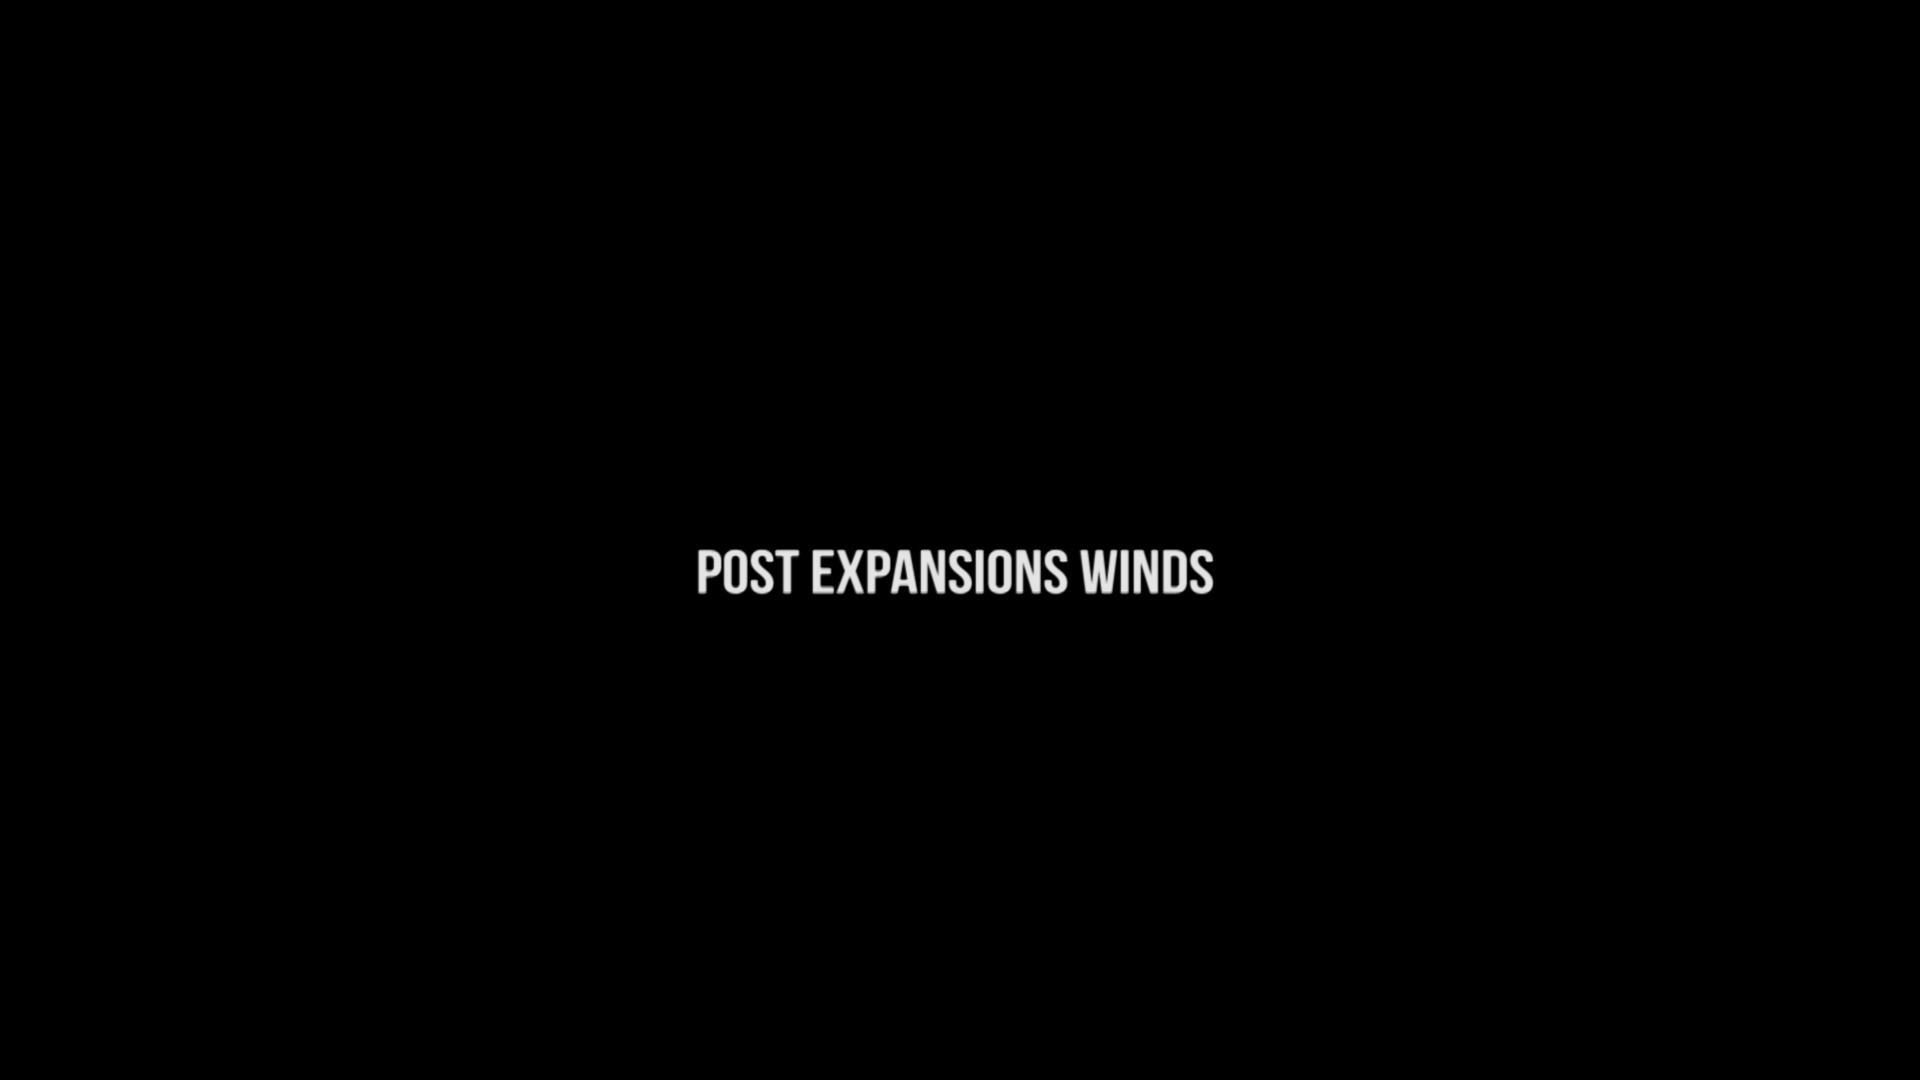 Post Expansions Winds1 copy